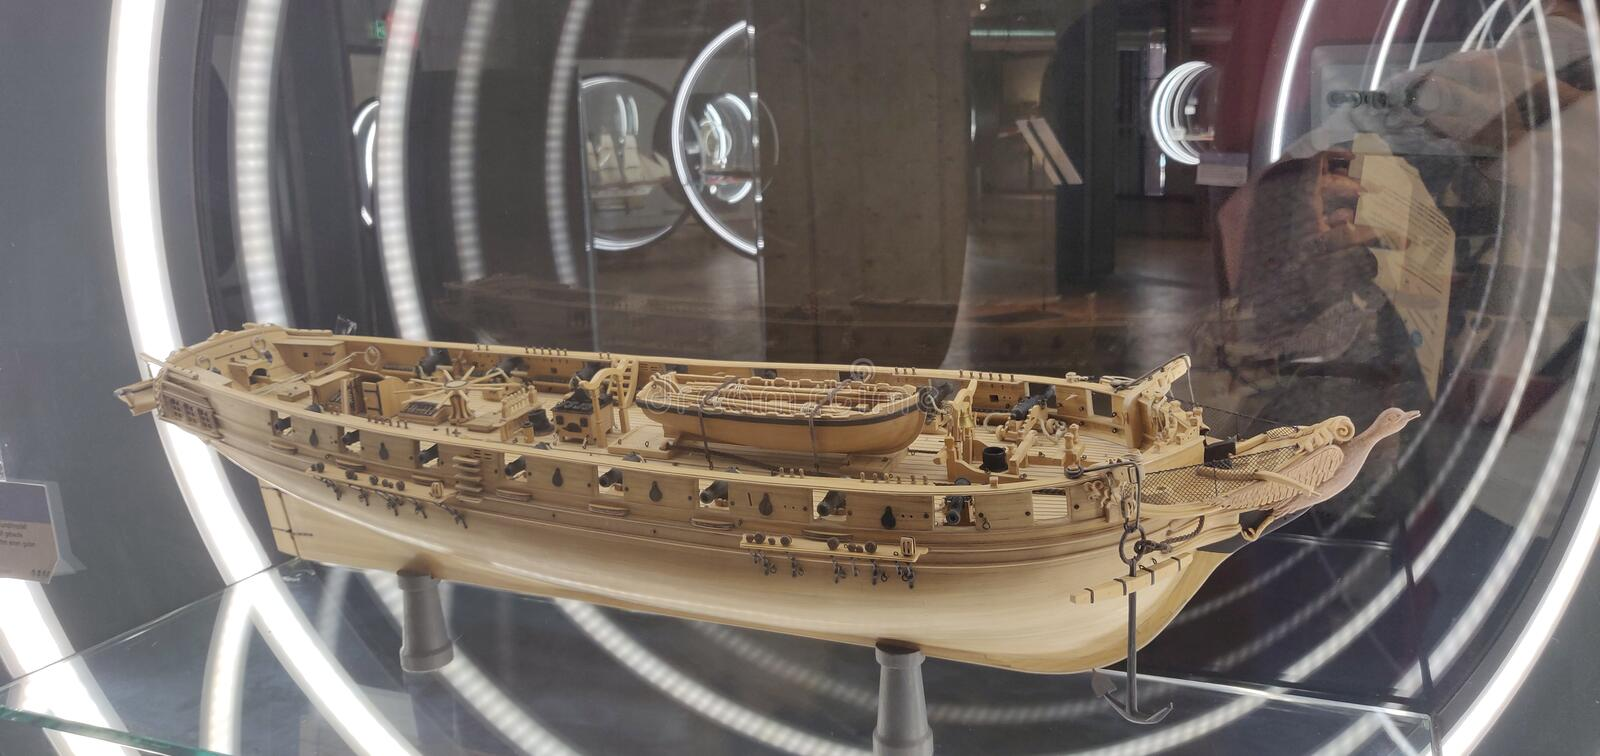 Model of wood boat in bottle stored in museum royalty free stock photos